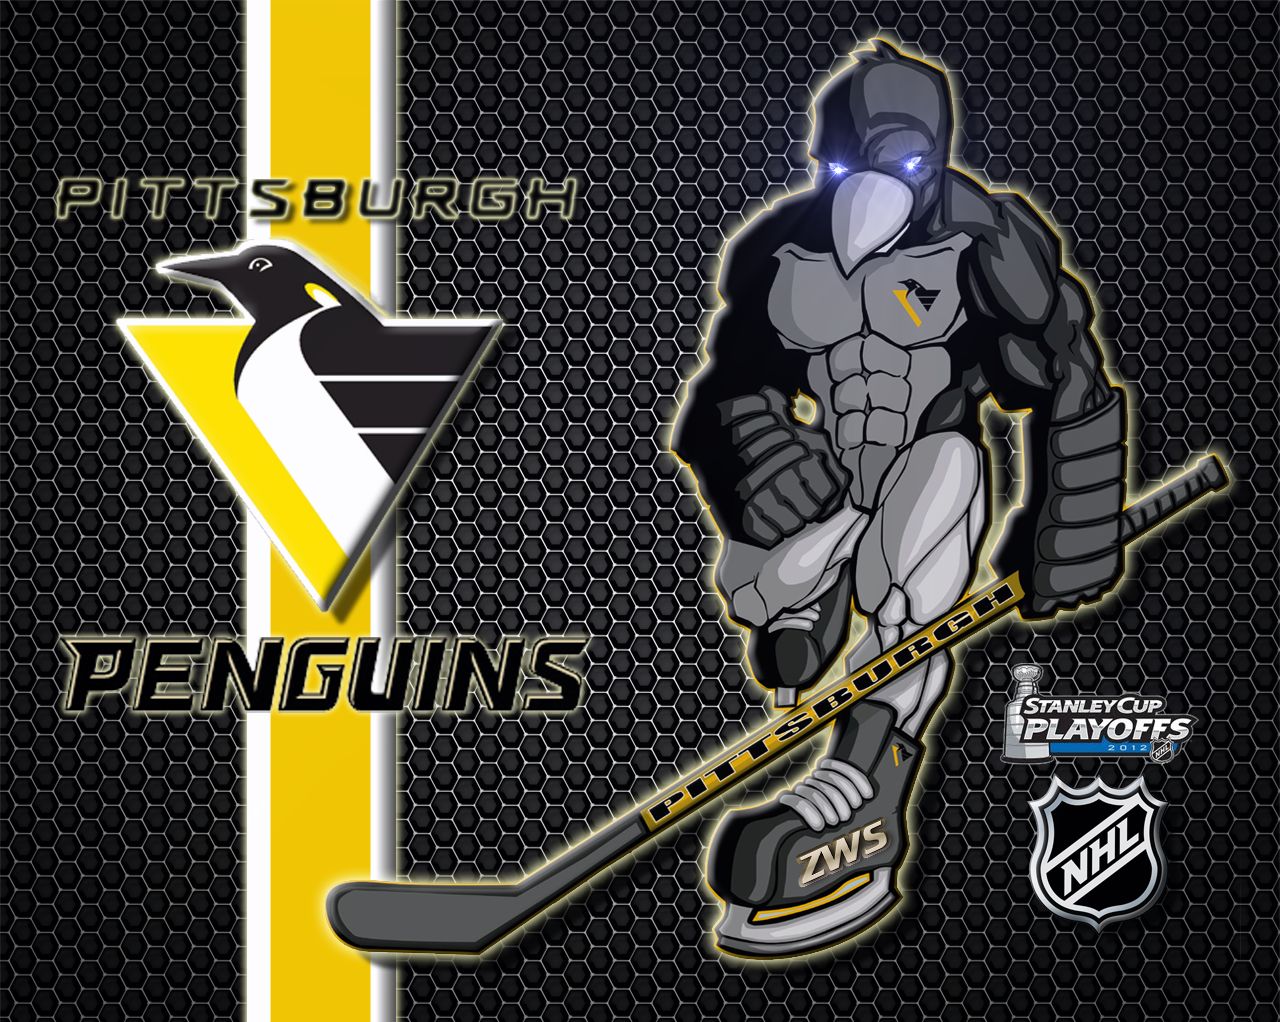 Pittsburgh Penguins wallpaper GO PENS!!